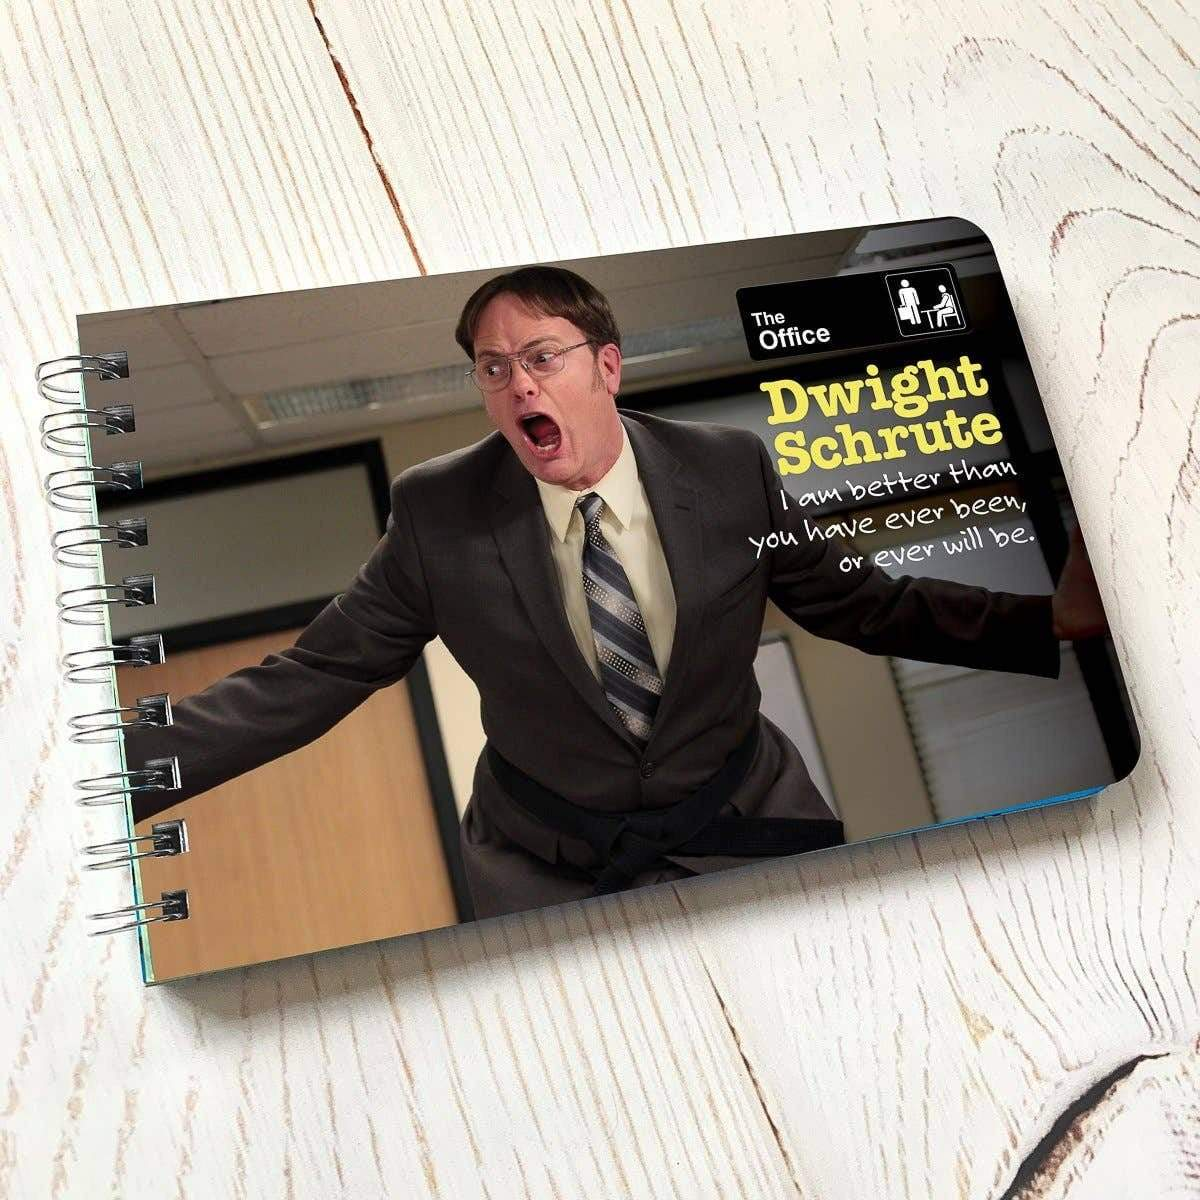 The Office: Dwight Schrute Quotes To Live By Papersalt Paper Products